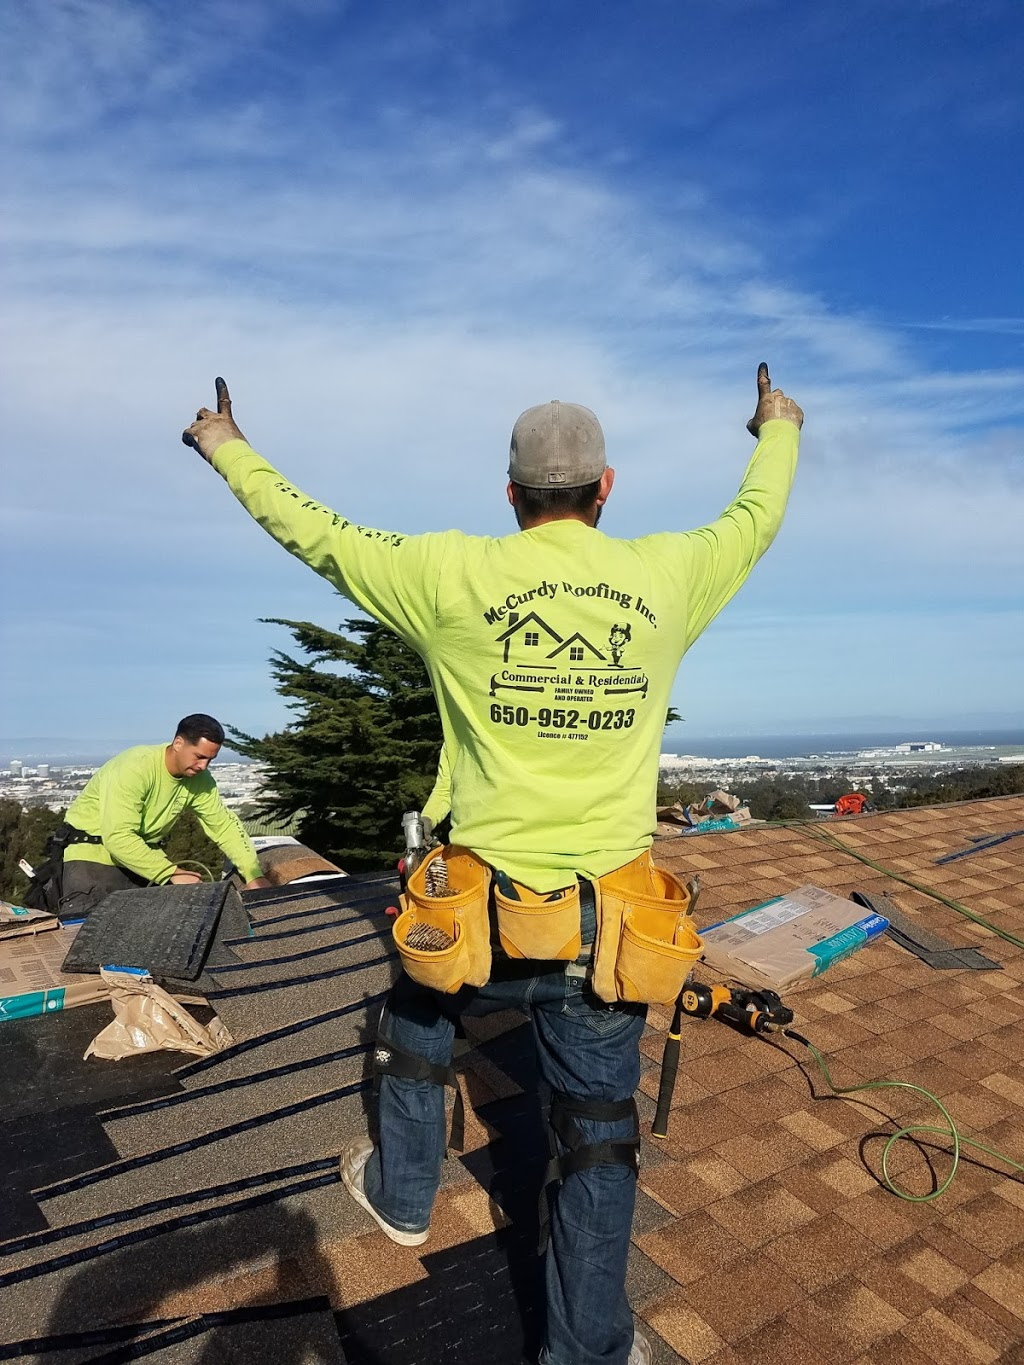 Mike McCurdy Roofing Inc. - roofing contractor  | Photo 1 of 10 | Address: 371 Shaw Rd, South San Francisco, CA 94080, USA | Phone: (650) 952-0233